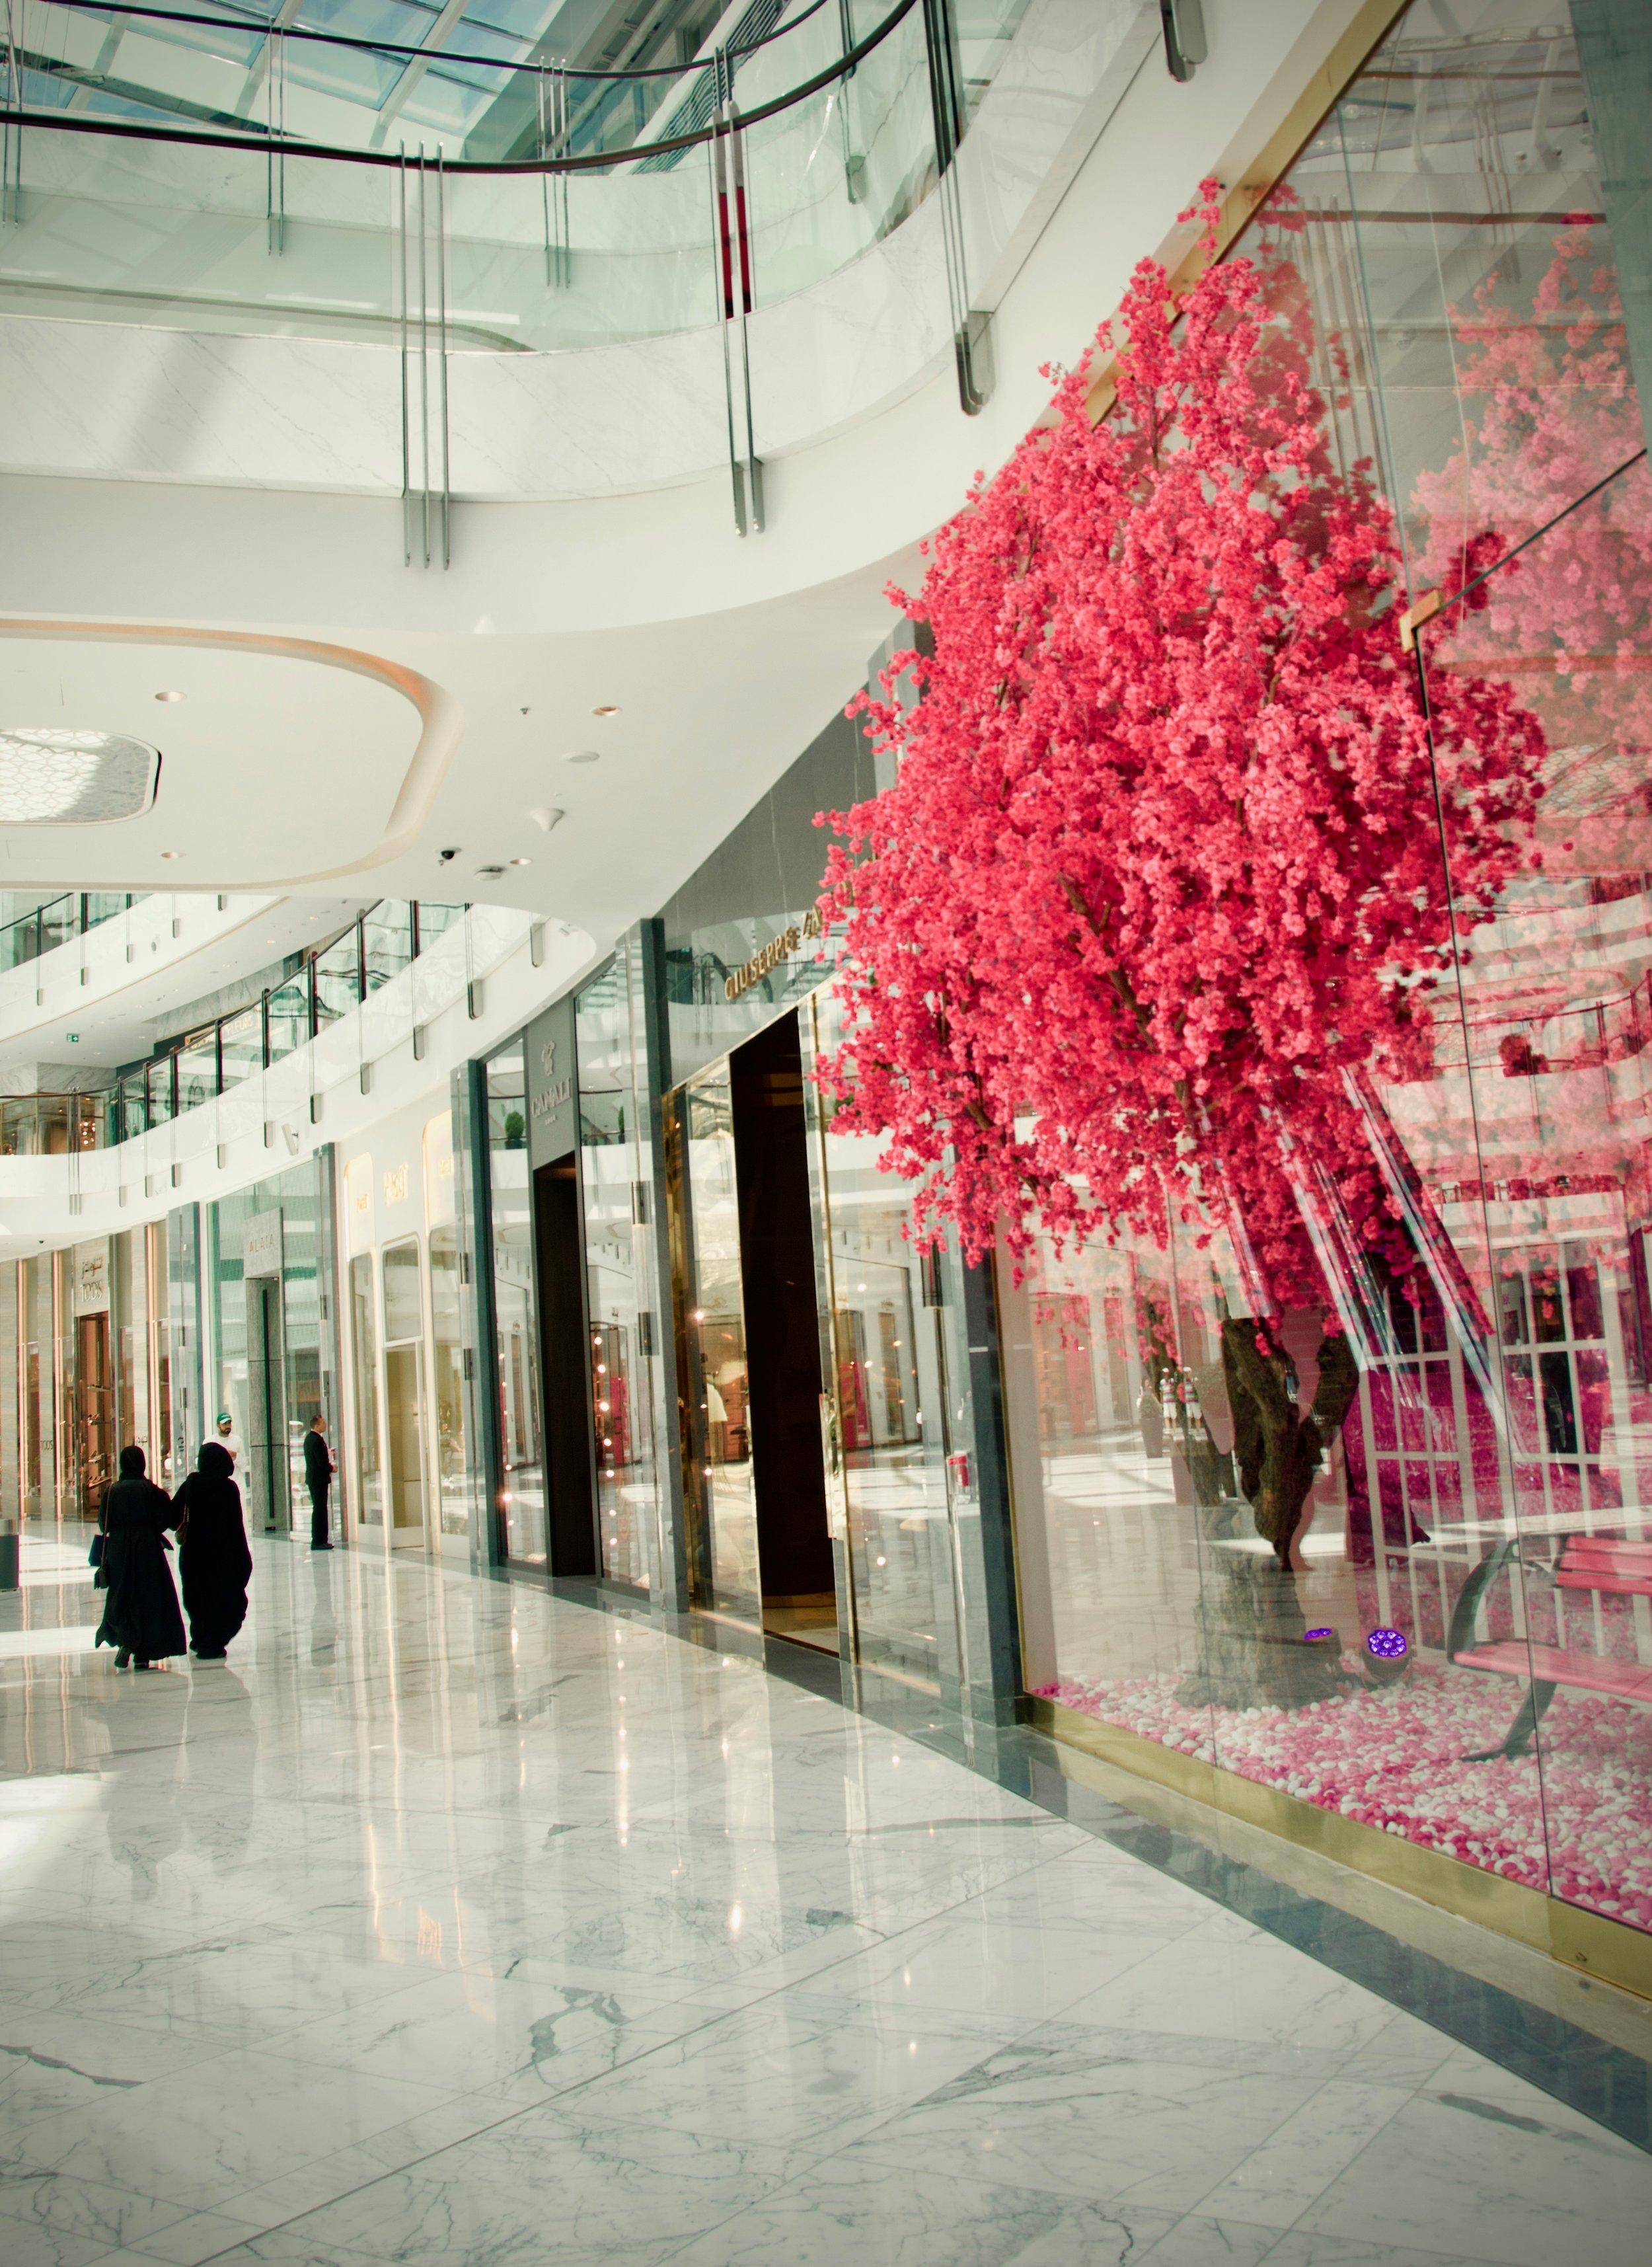 Springtime in the Dubai Mall